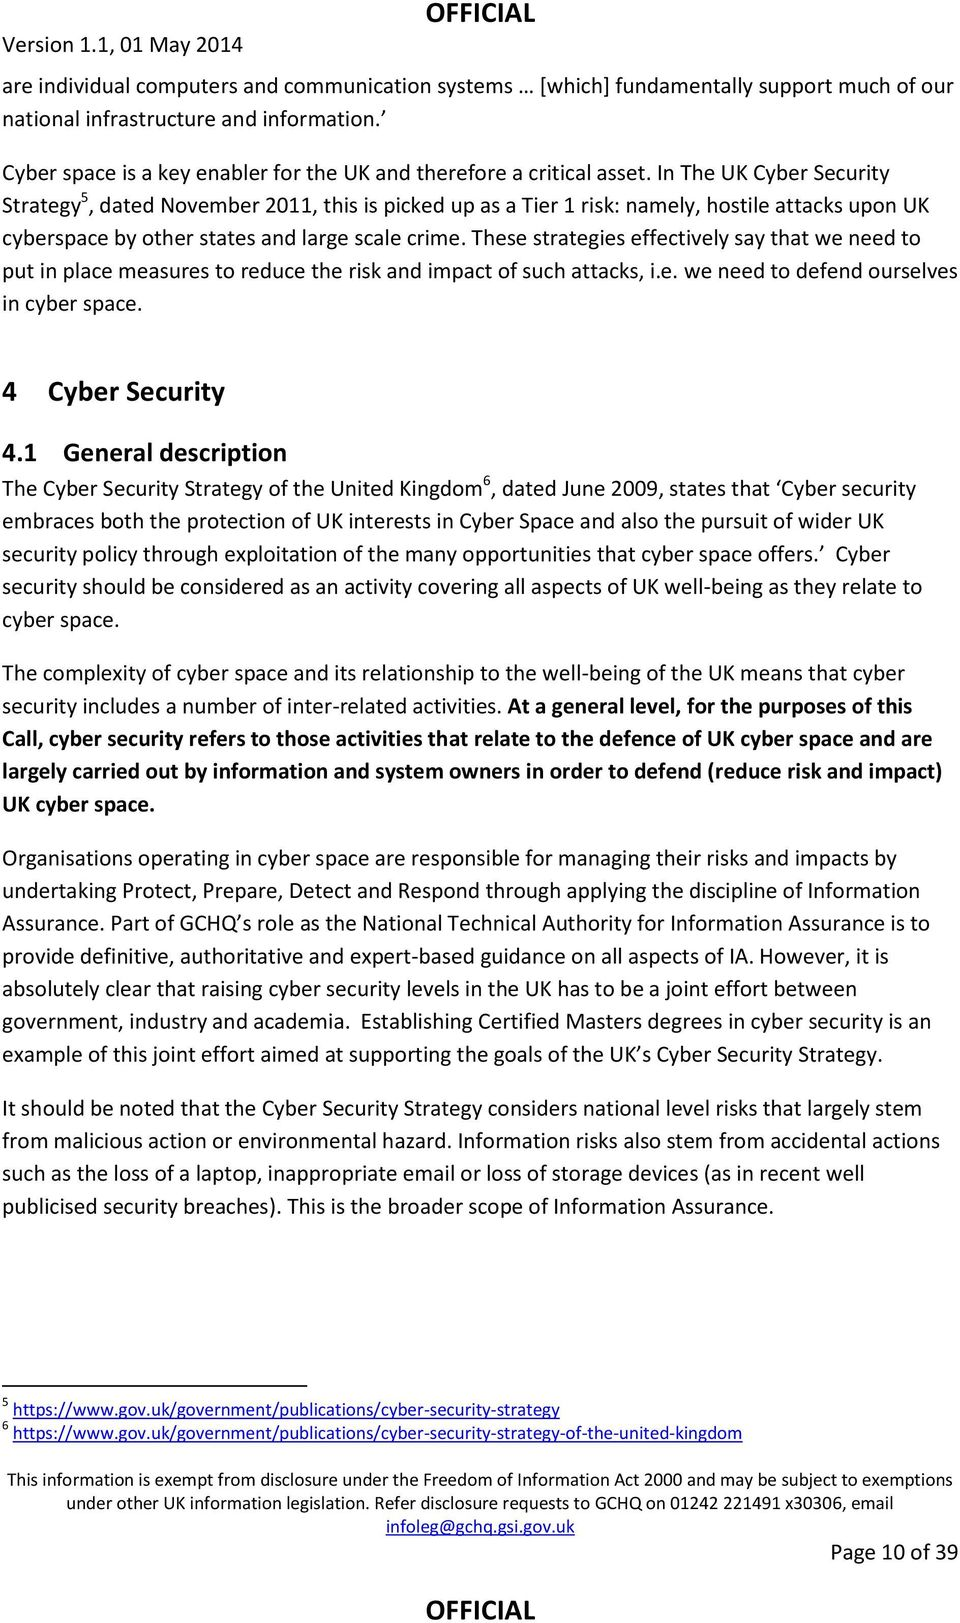 In The UK Cyber Security Strategy 5, dated November 2011, this is picked up as a Tier 1 risk: namely, hostile attacks upon UK cyberspace by other states and large scale crime.